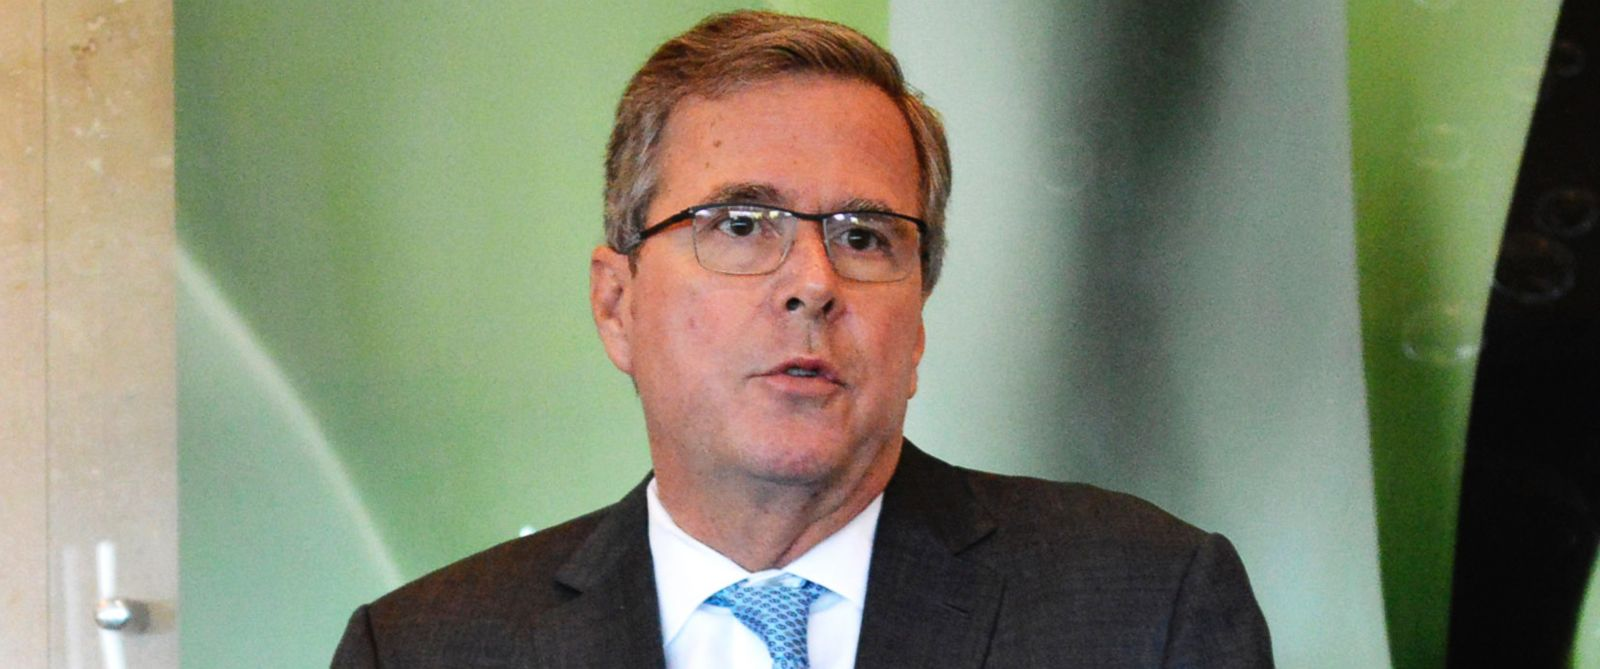 PHOTO: Jeb Bush speaks at a fund-raising luncheon in Tallahassee, Fla. on Feb. 10, 2015.